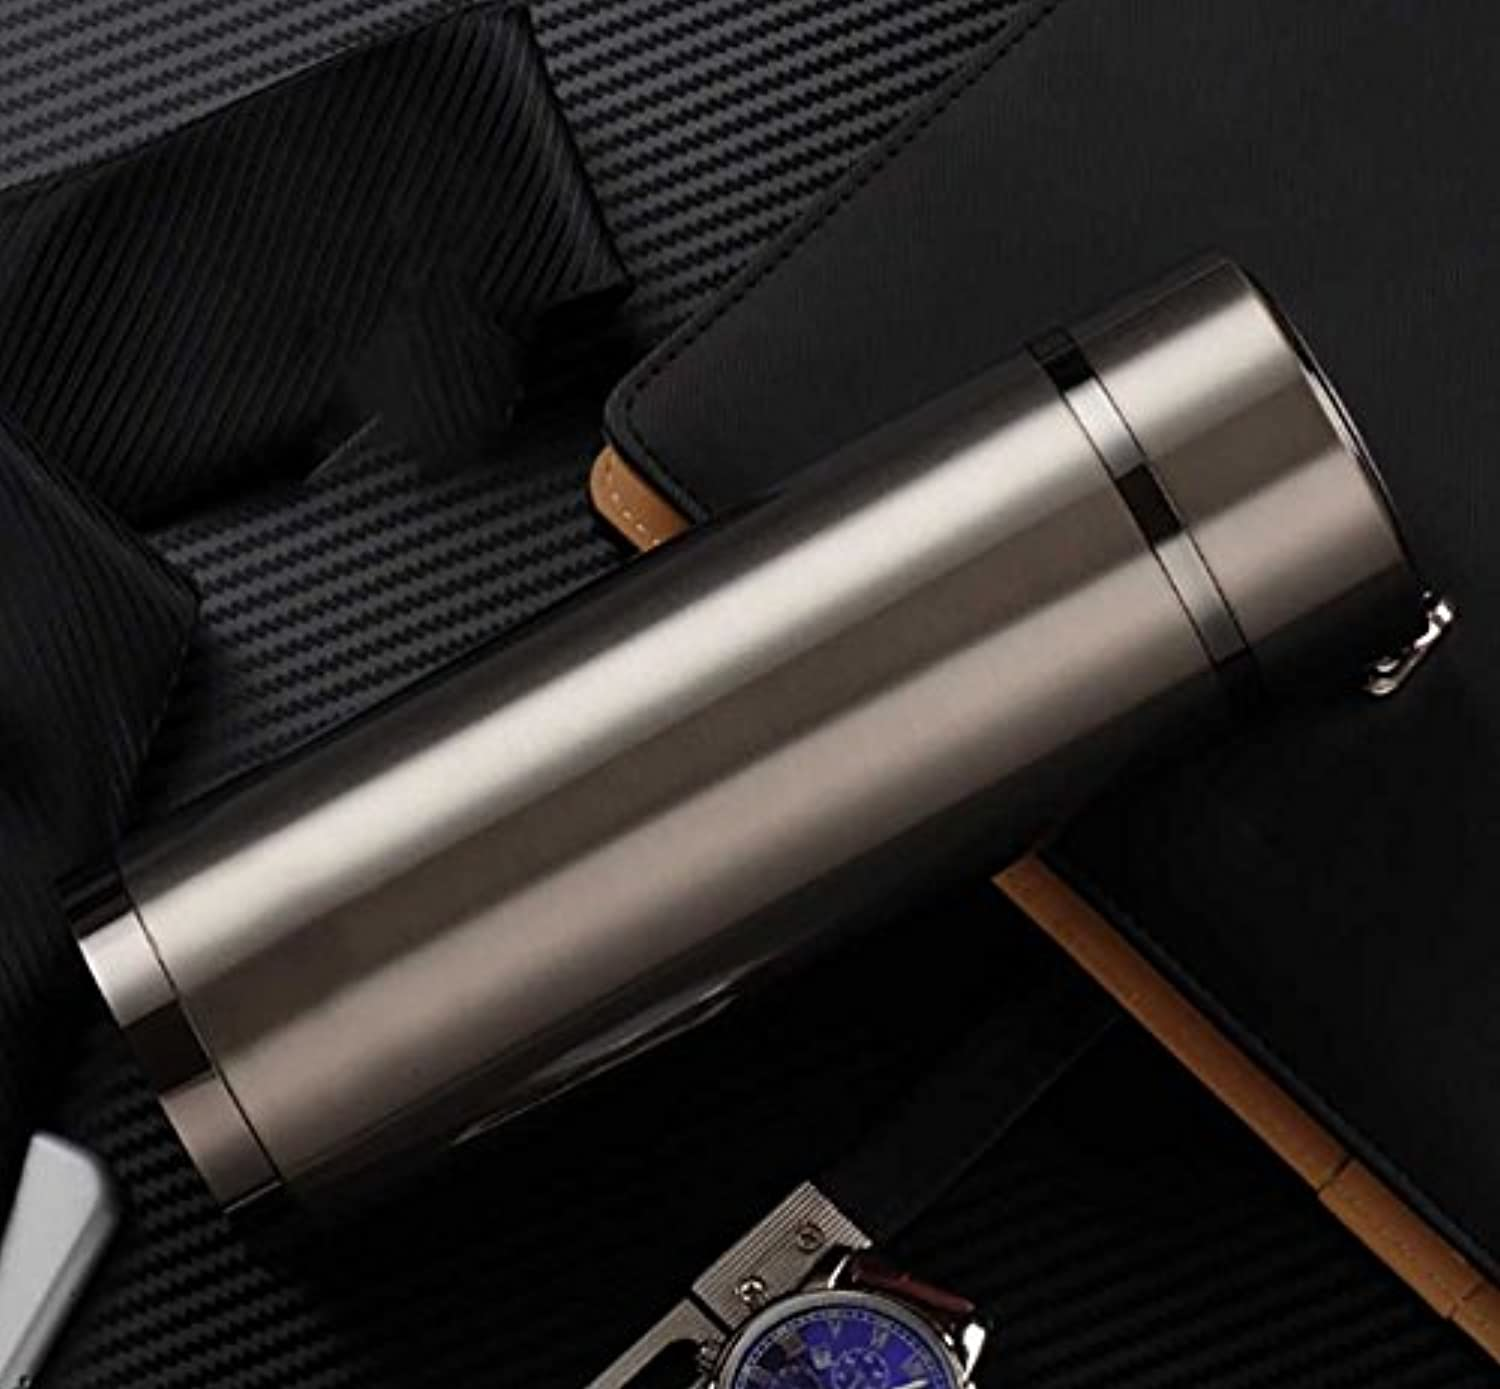 Newness World Stainless Steel Vacuum Cup Insulated Stainless Steel Water Bottle for Sports Camping,1pc(Silver Pattern 2)